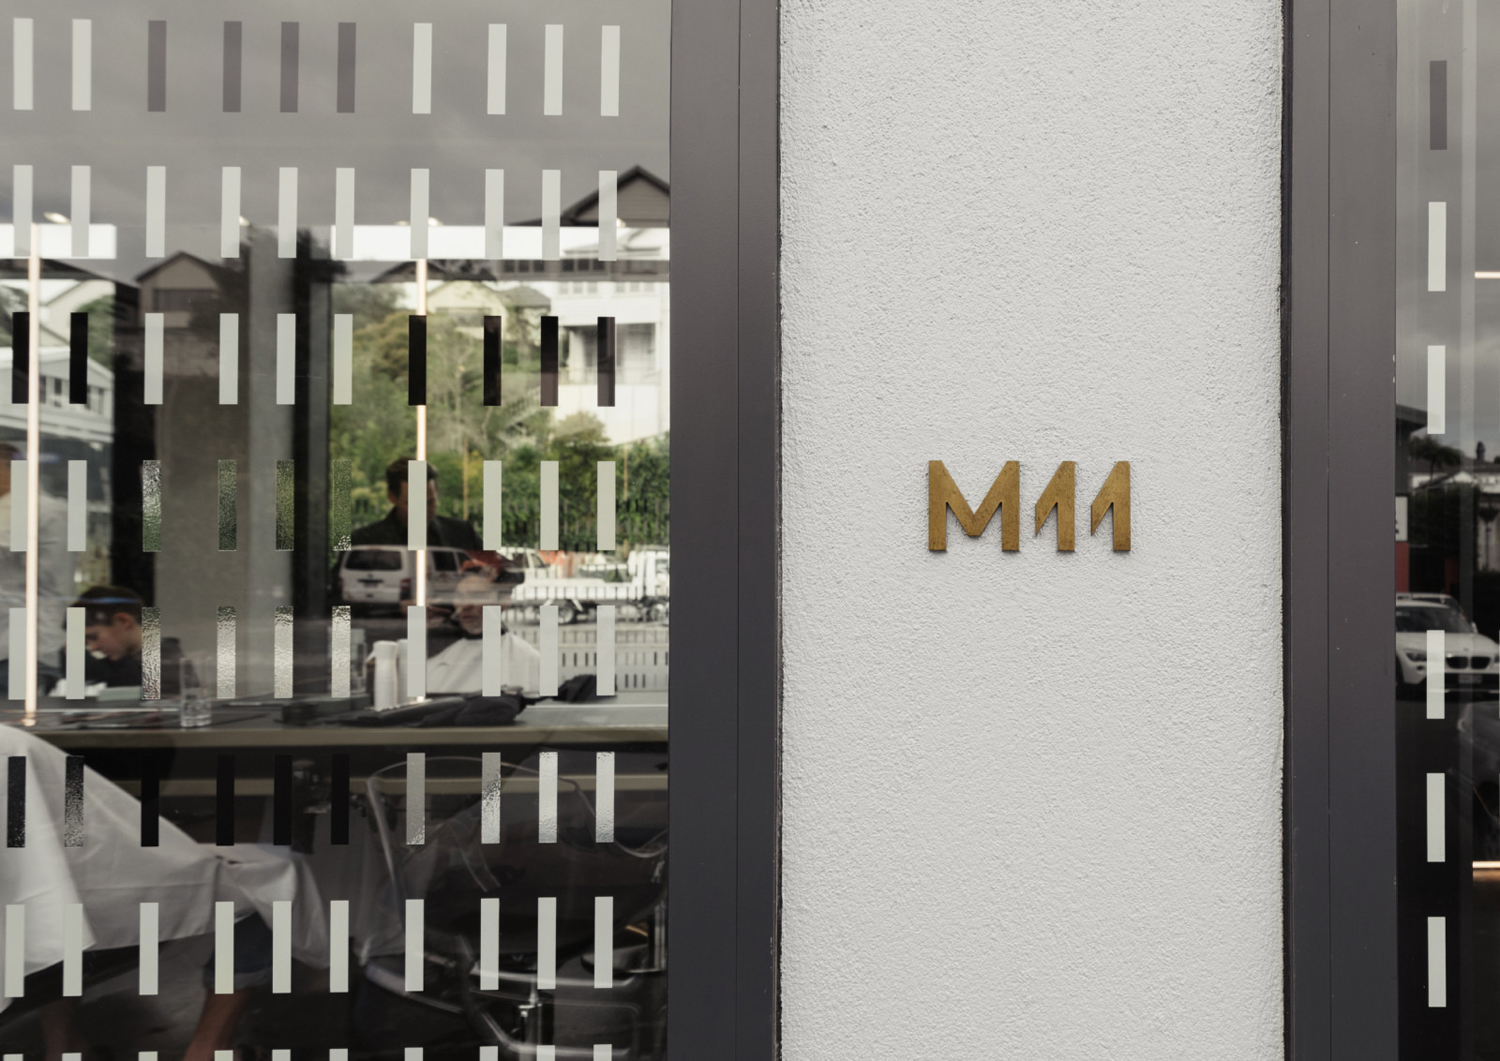 Brand identity, window graphics and signage for Auckland-based luxe salon M11 designed by Inhouse, New Zealand